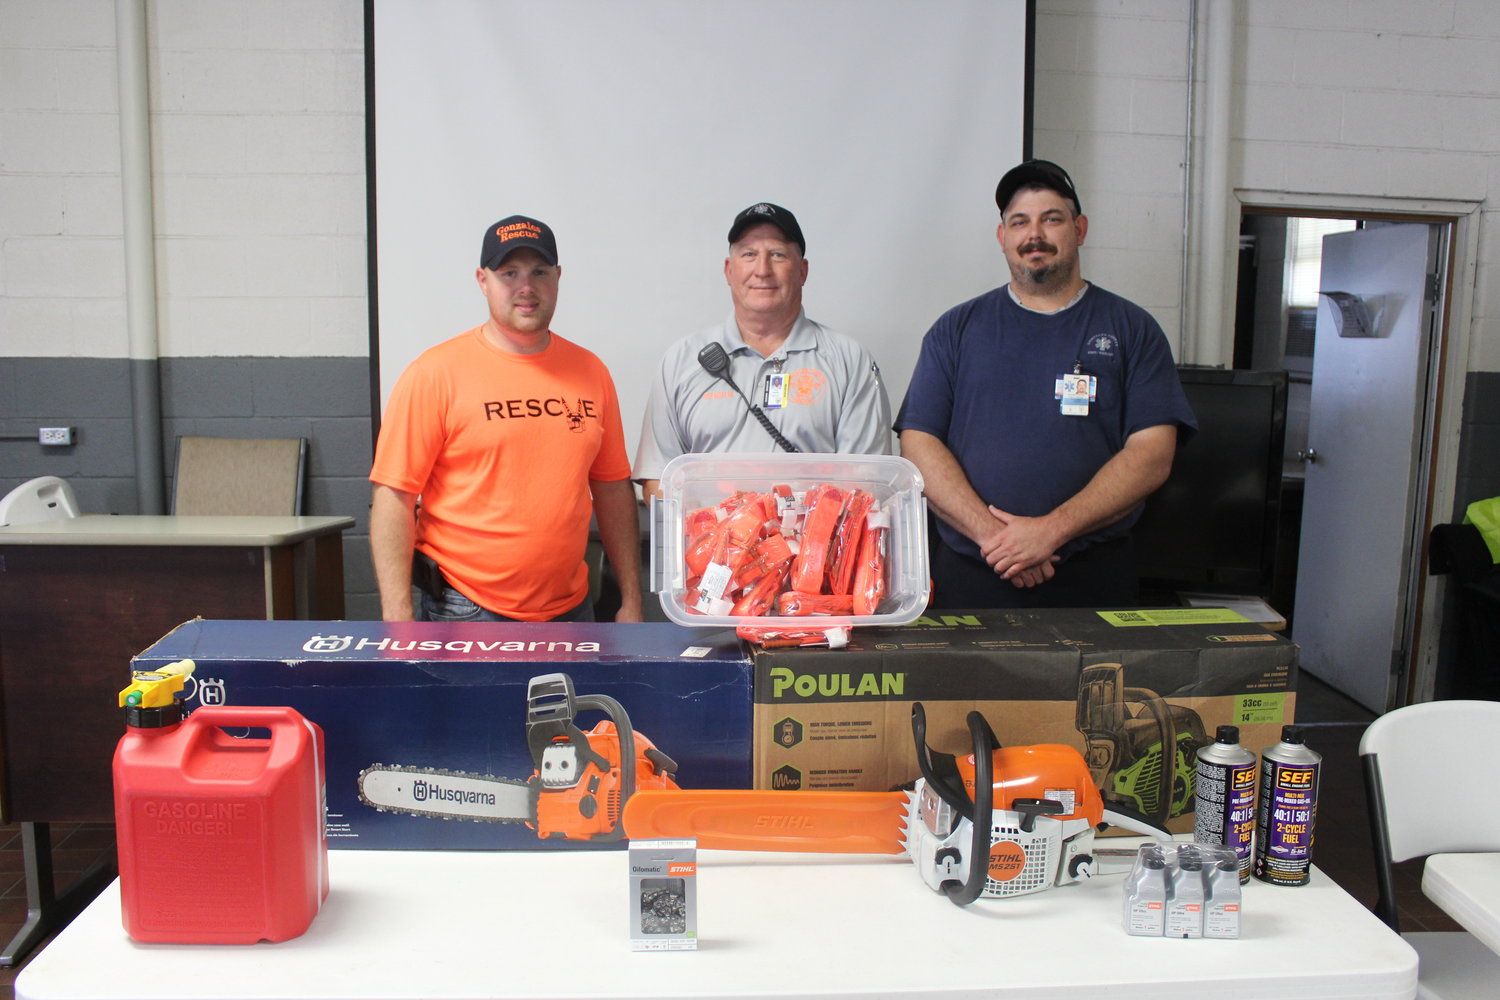 Tony Matias, Ken Colwell and James Cole of Gonzales County Rescue stand behind the new chain saws and tourniquets that were donated by area businesses to help support Rescue.